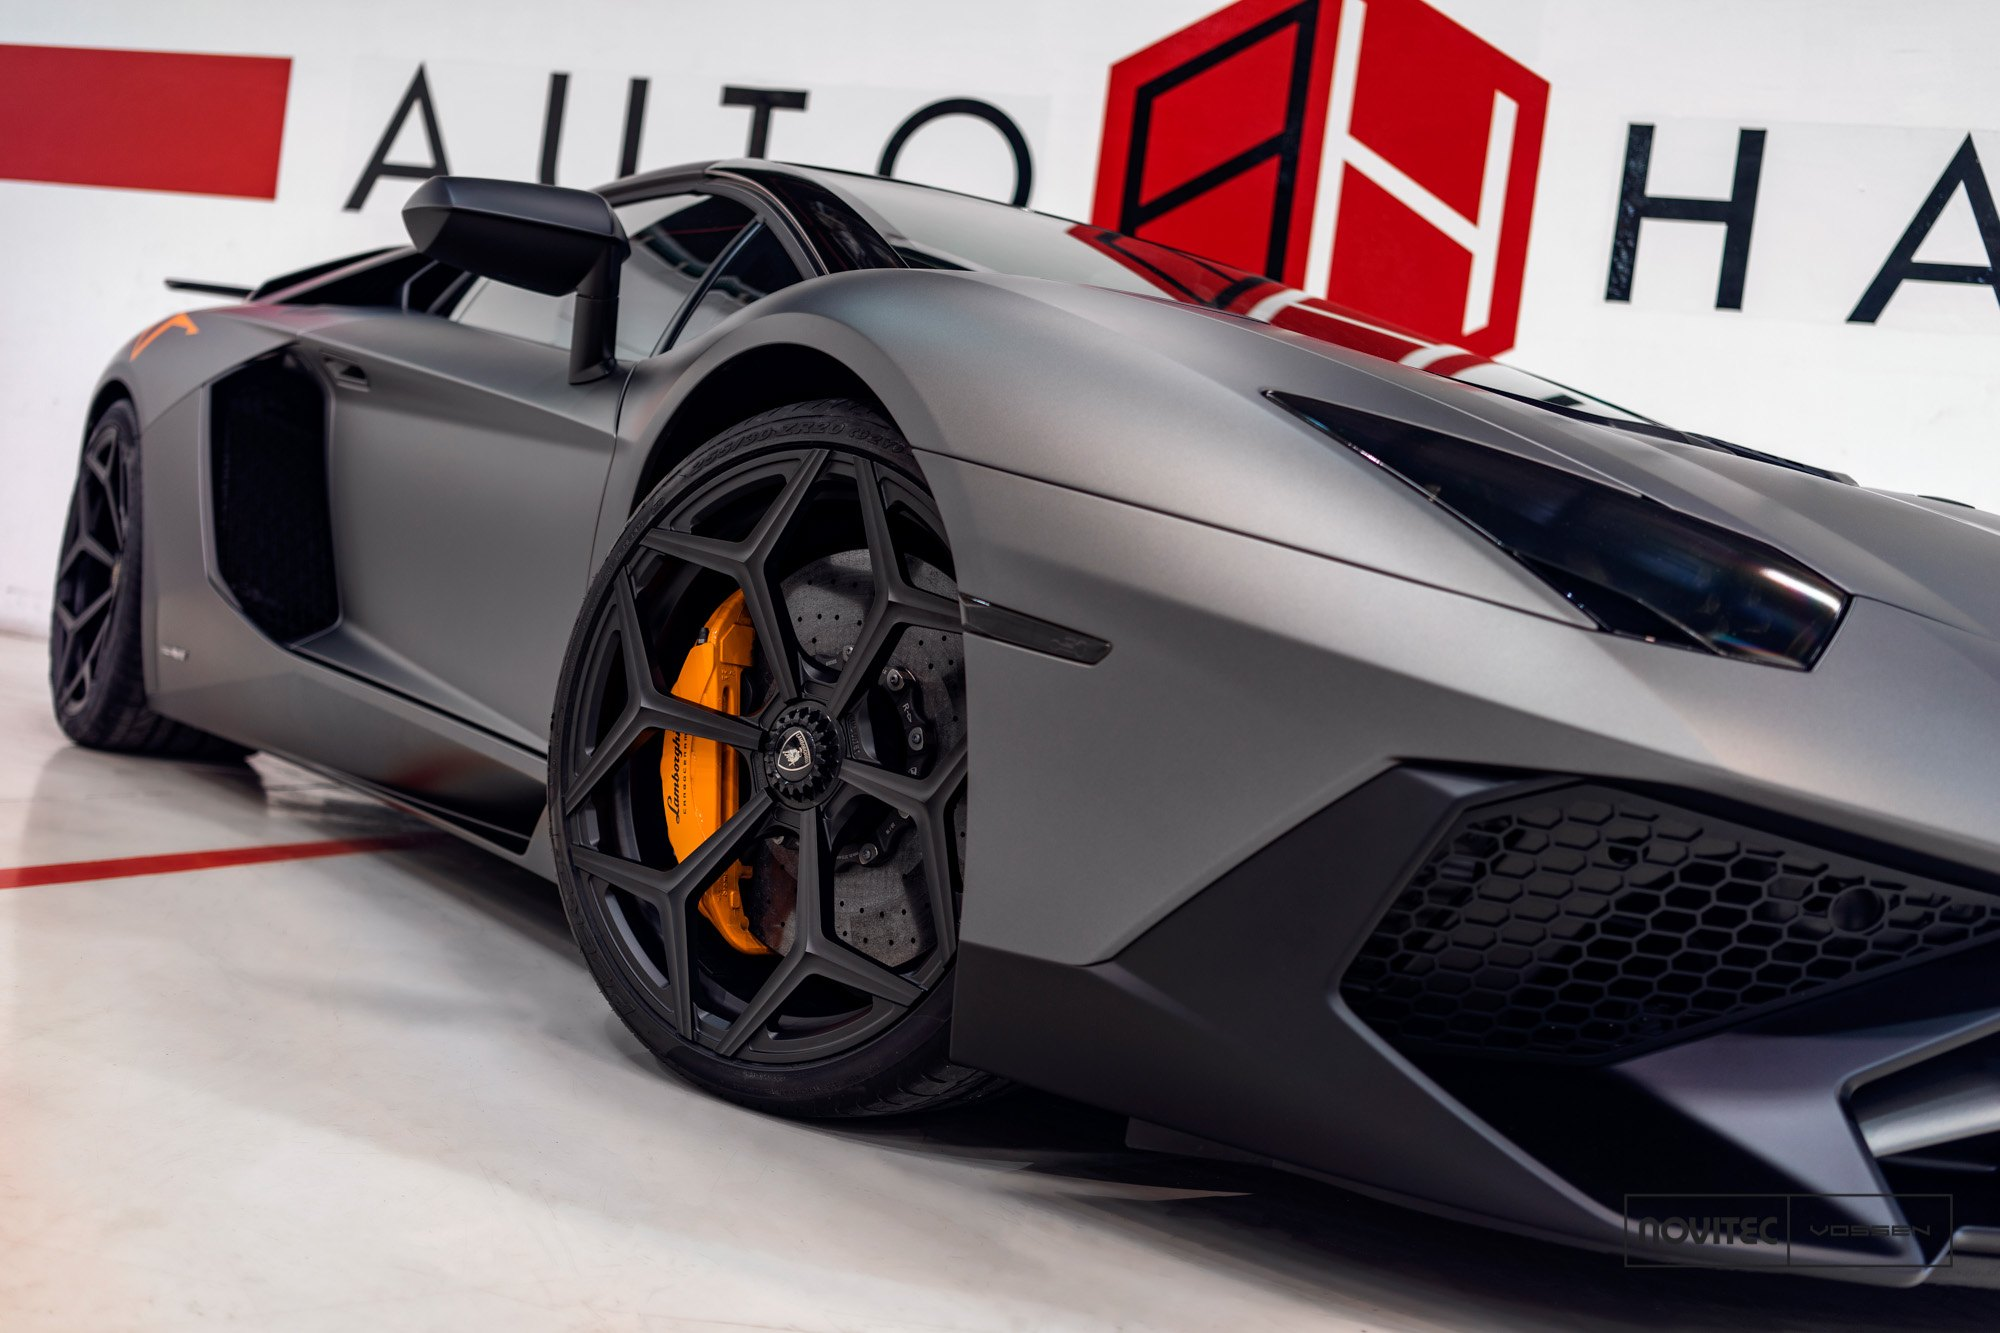 batman approves sinister gray lamborghini aventador with. Black Bedroom Furniture Sets. Home Design Ideas